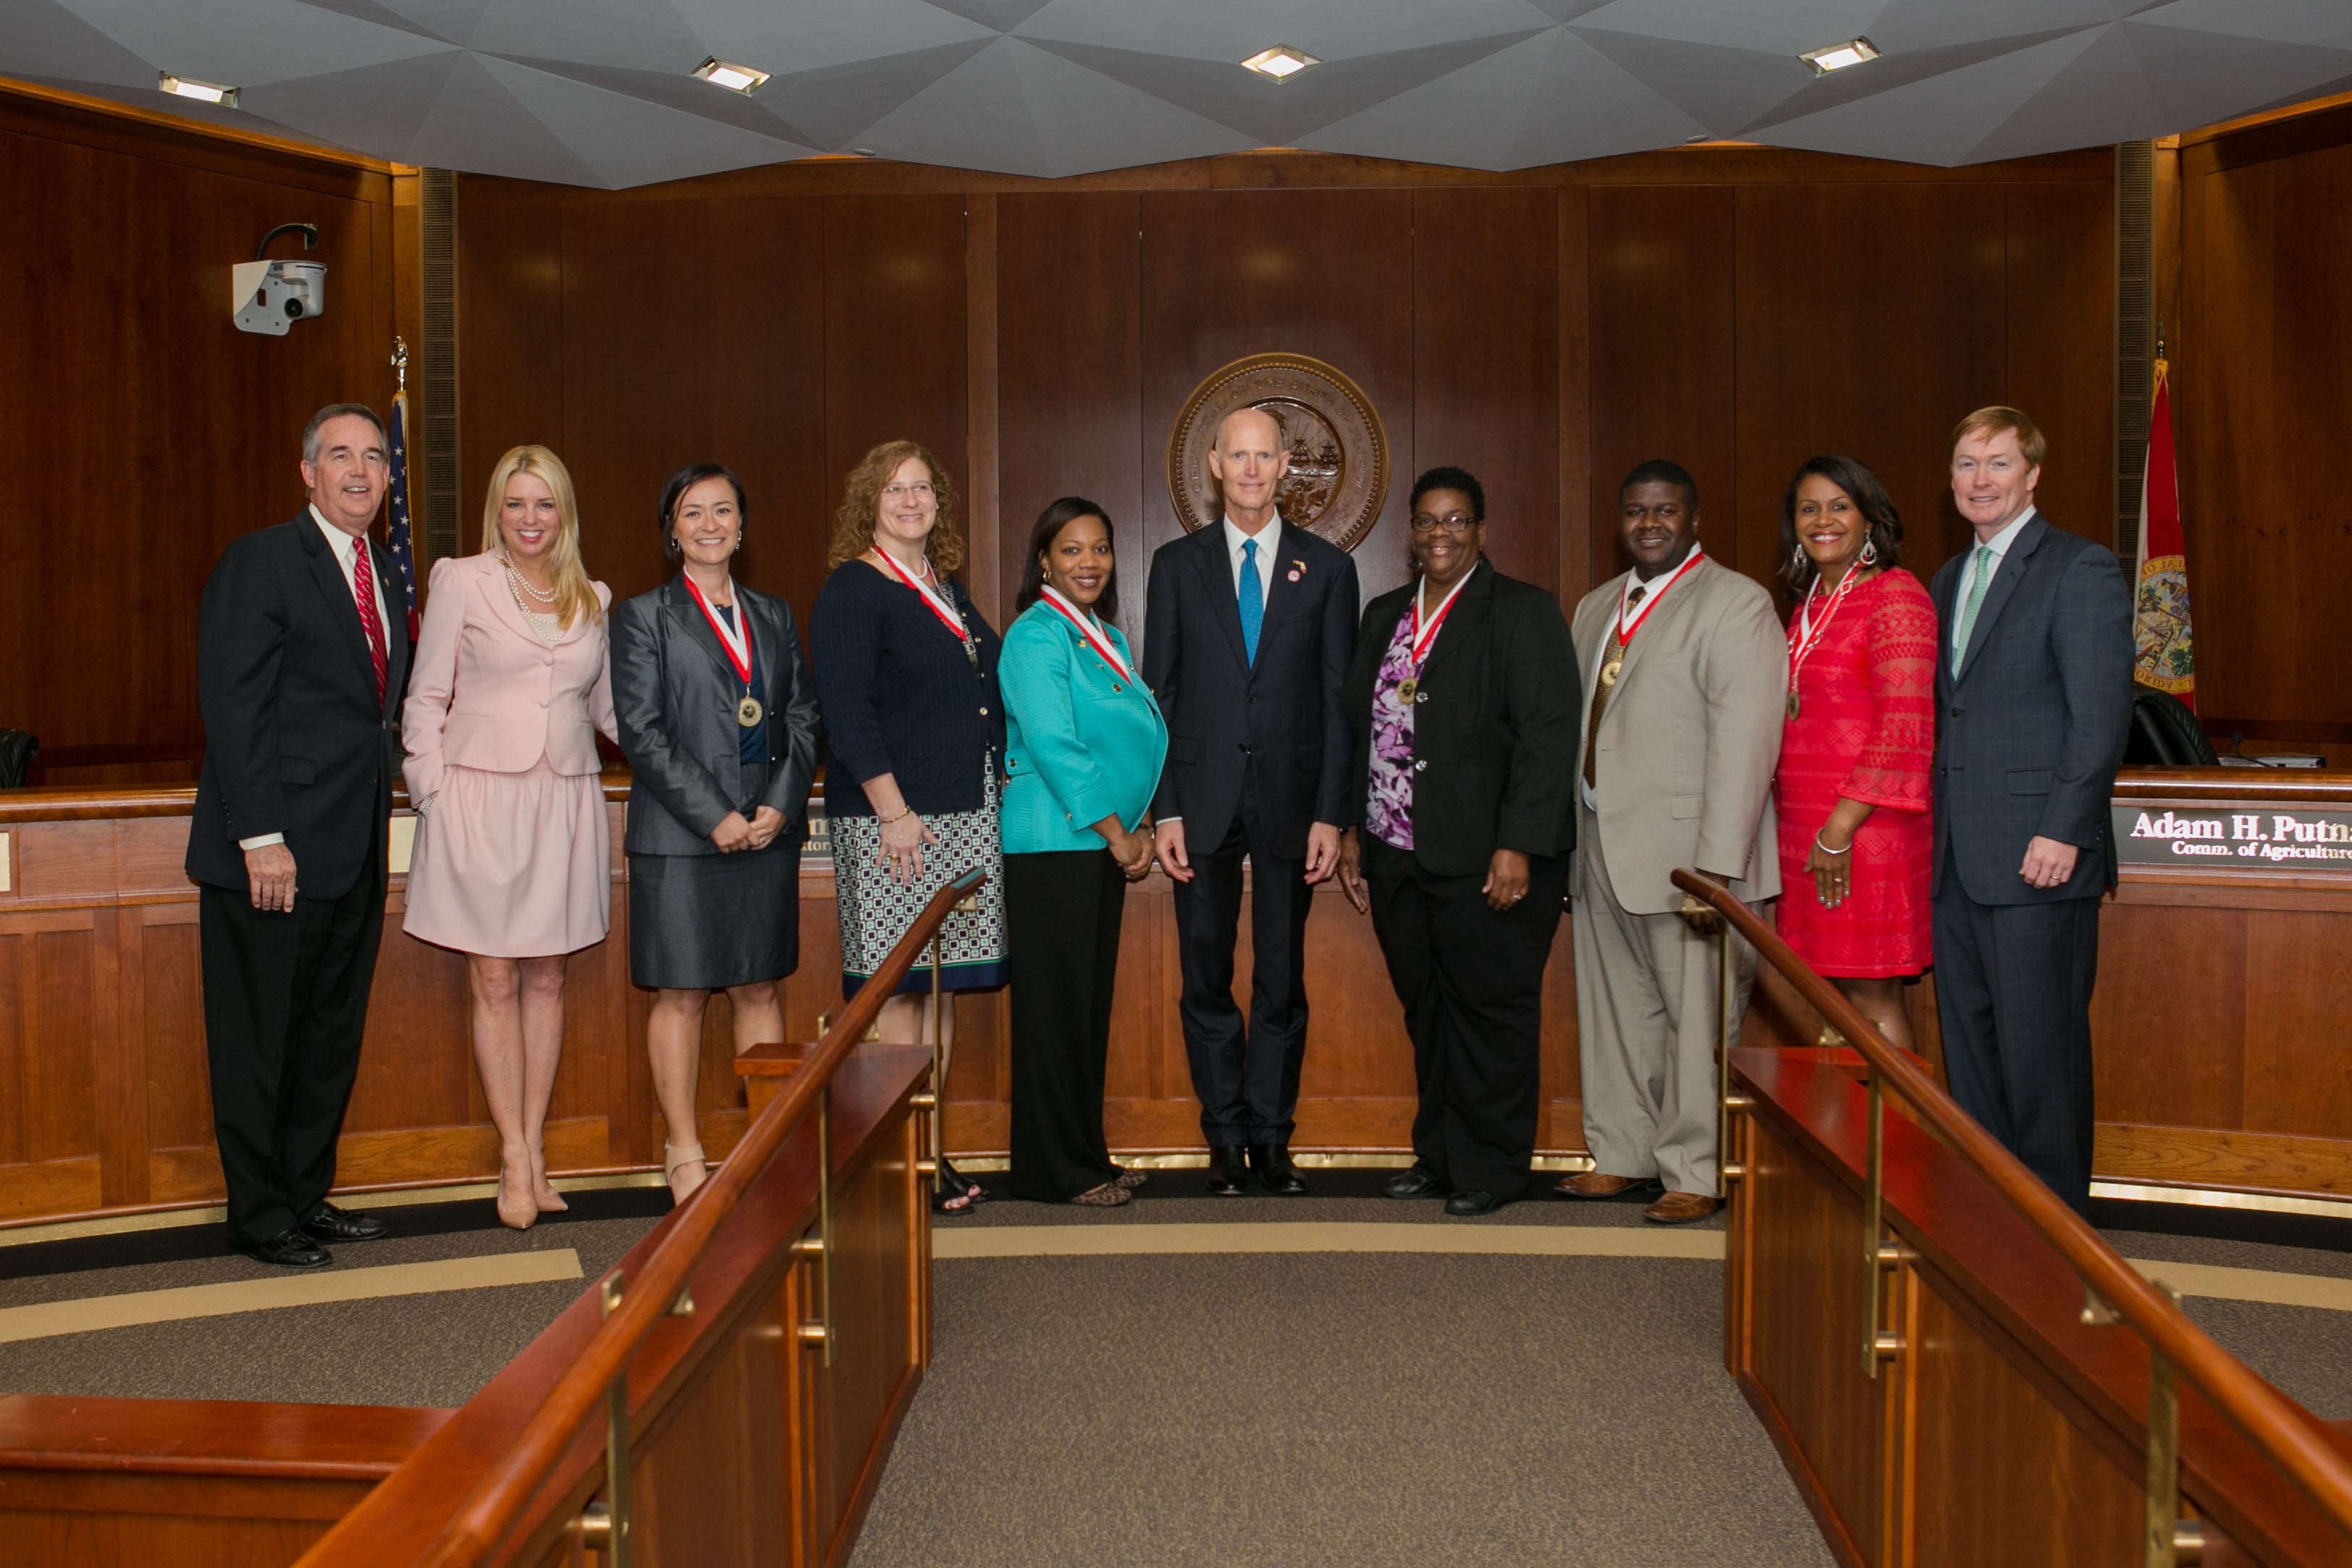 Certification Course Notary Template Simple Contract Agreement, Governor  Scott Presents Shine Awards To Six Outstanding Florida Educators